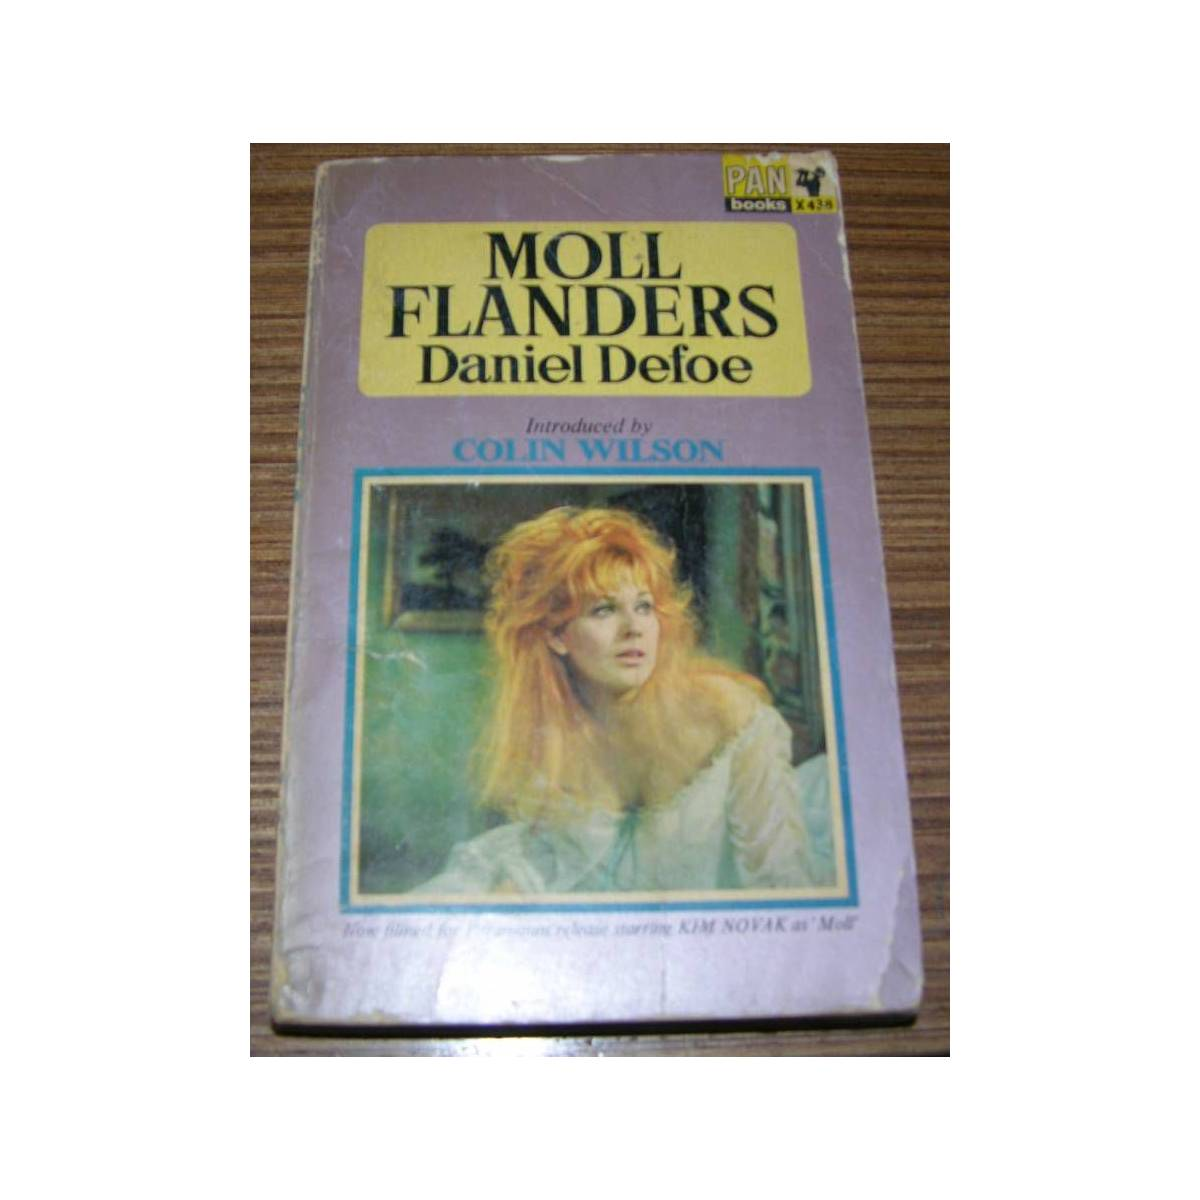 daniel defoes childhood mirrored in his book moll flanders Daniel defoes childhood mirrored in his book childhood mirrored in his book moll flanders the story of a discussion of male and female bond in john updikes.